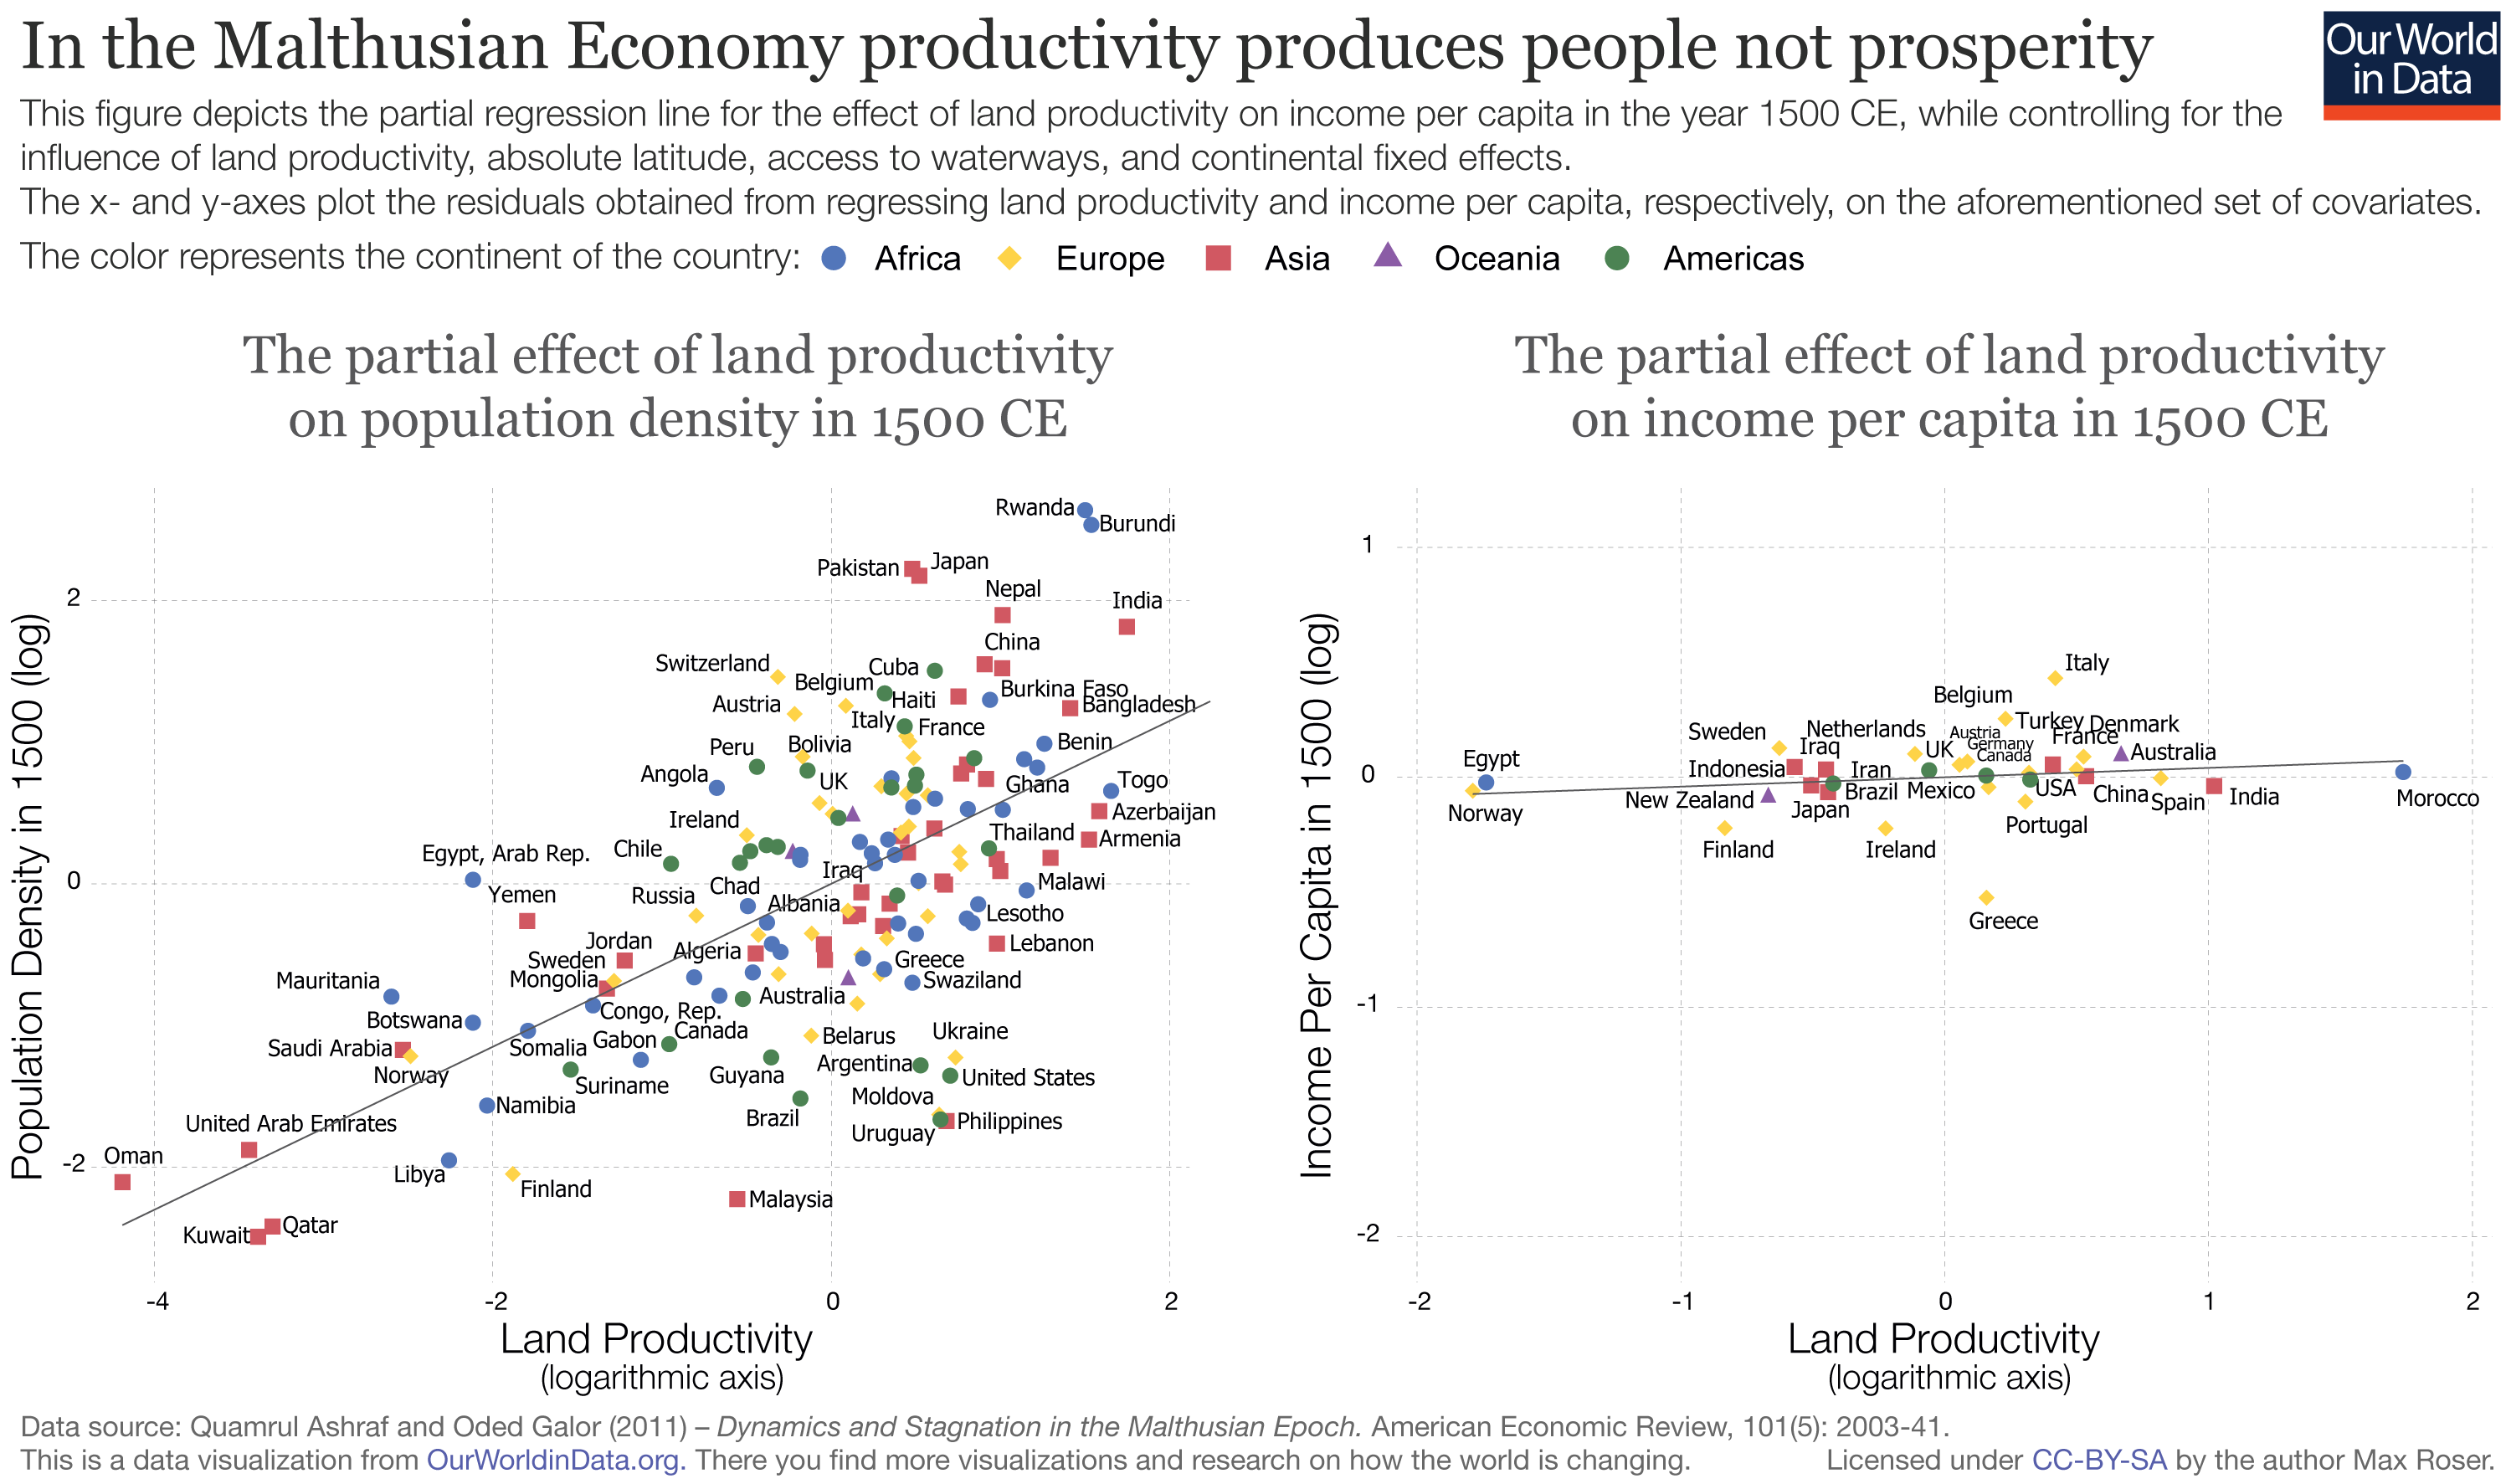 Economic Growth - Our World in Data